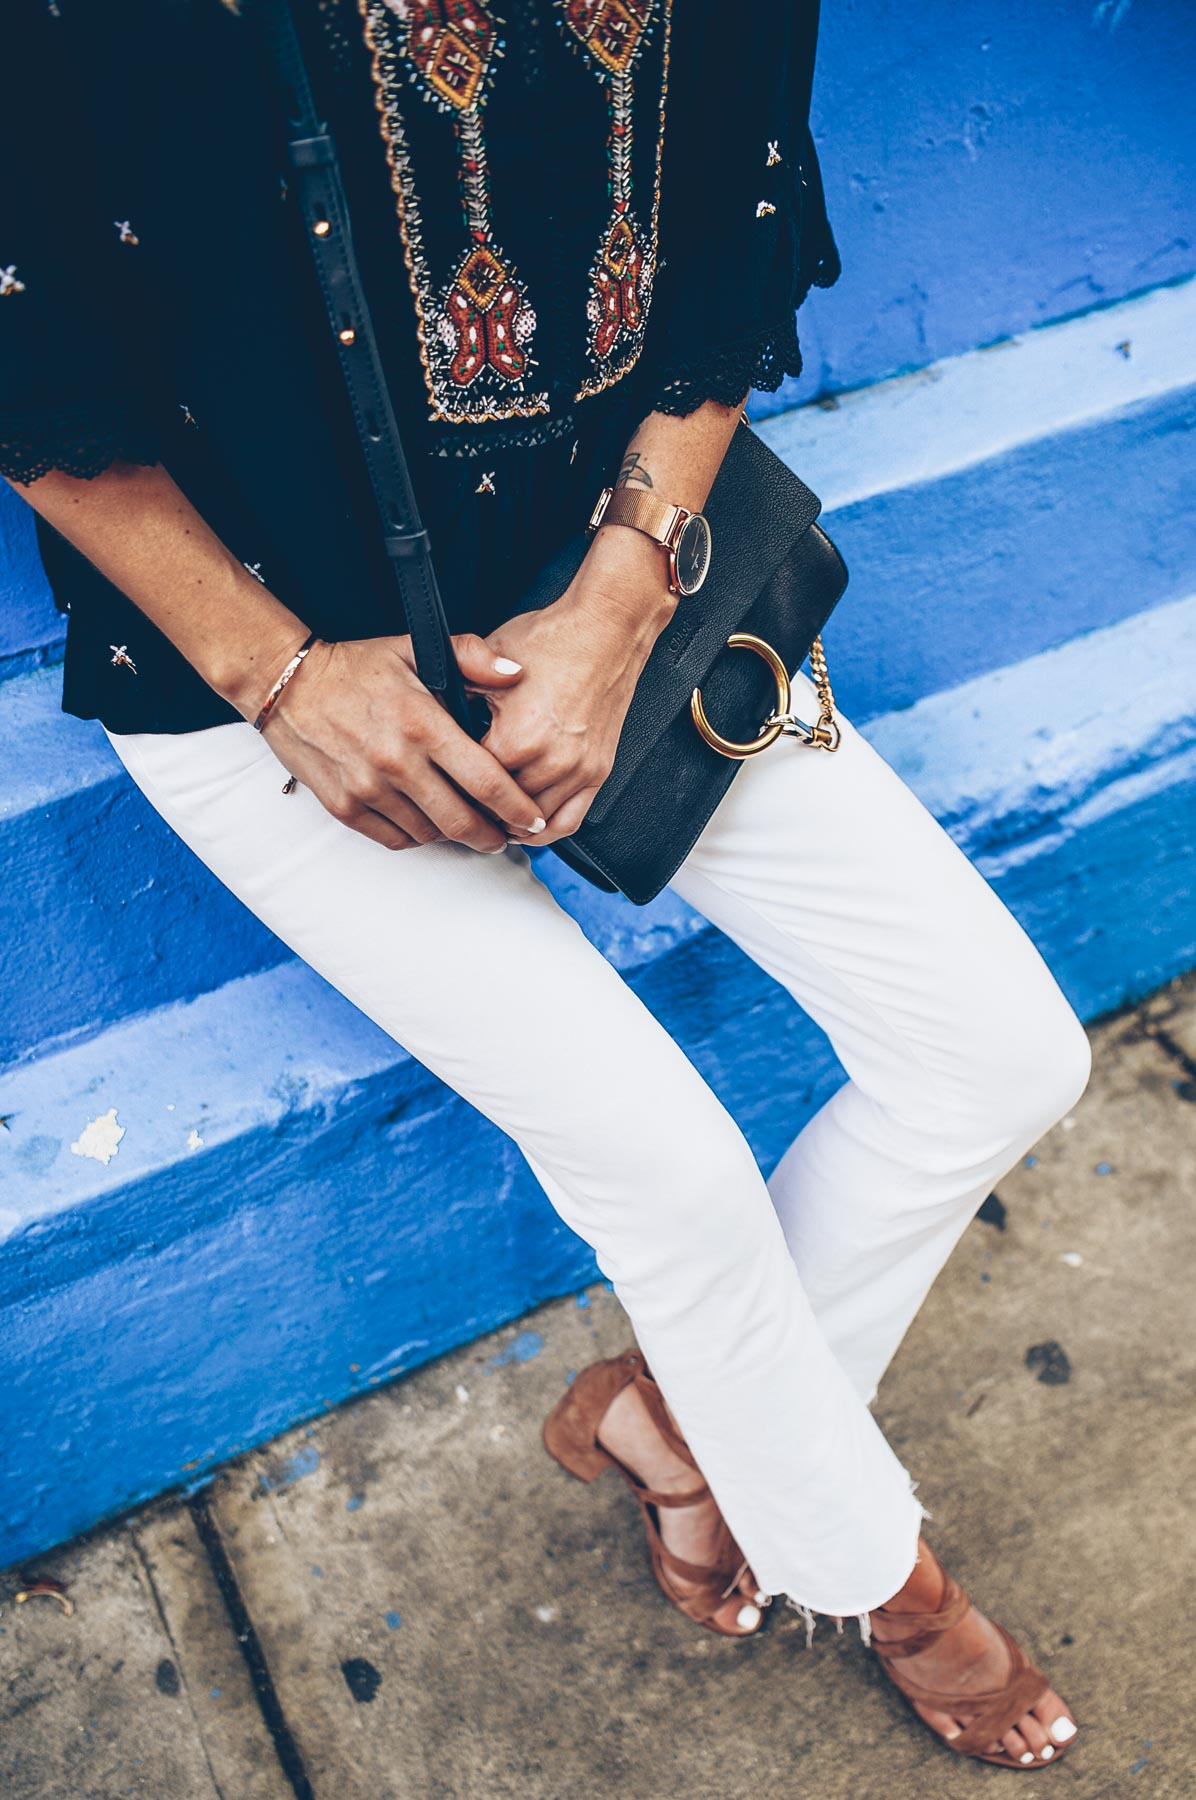 Jess Ann Kirby wearing Sam Edelman Sheri Lace Up Sandals and Paige Denim Colette White Cropped Jeans with a Raw Hem